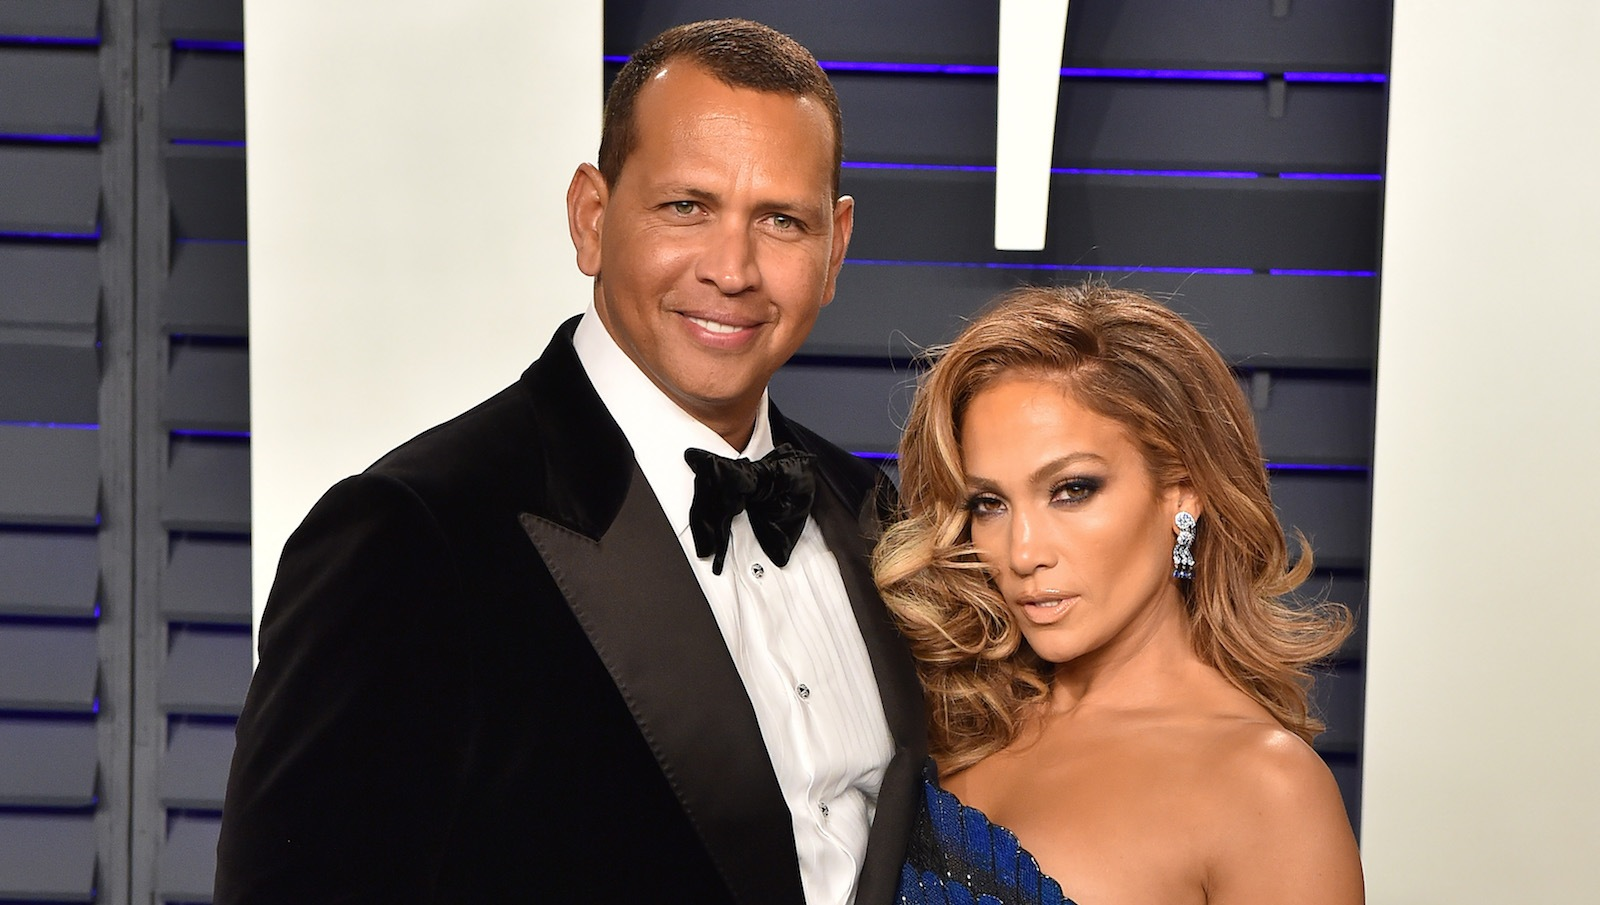 BEVERLY HILLS, CALIFORNIA - FEBRUARY 24: Jennifer Lopez and Alex Rodriguez attend the 2019 Vanity Fair Oscar Party Hosted By Radhika Jones at Wallis Annenberg Center for the Performing Arts on February 24, 2019 in Beverly Hills, California. (Photo by Axelle/Bauer-Griffin/FilmMagic)